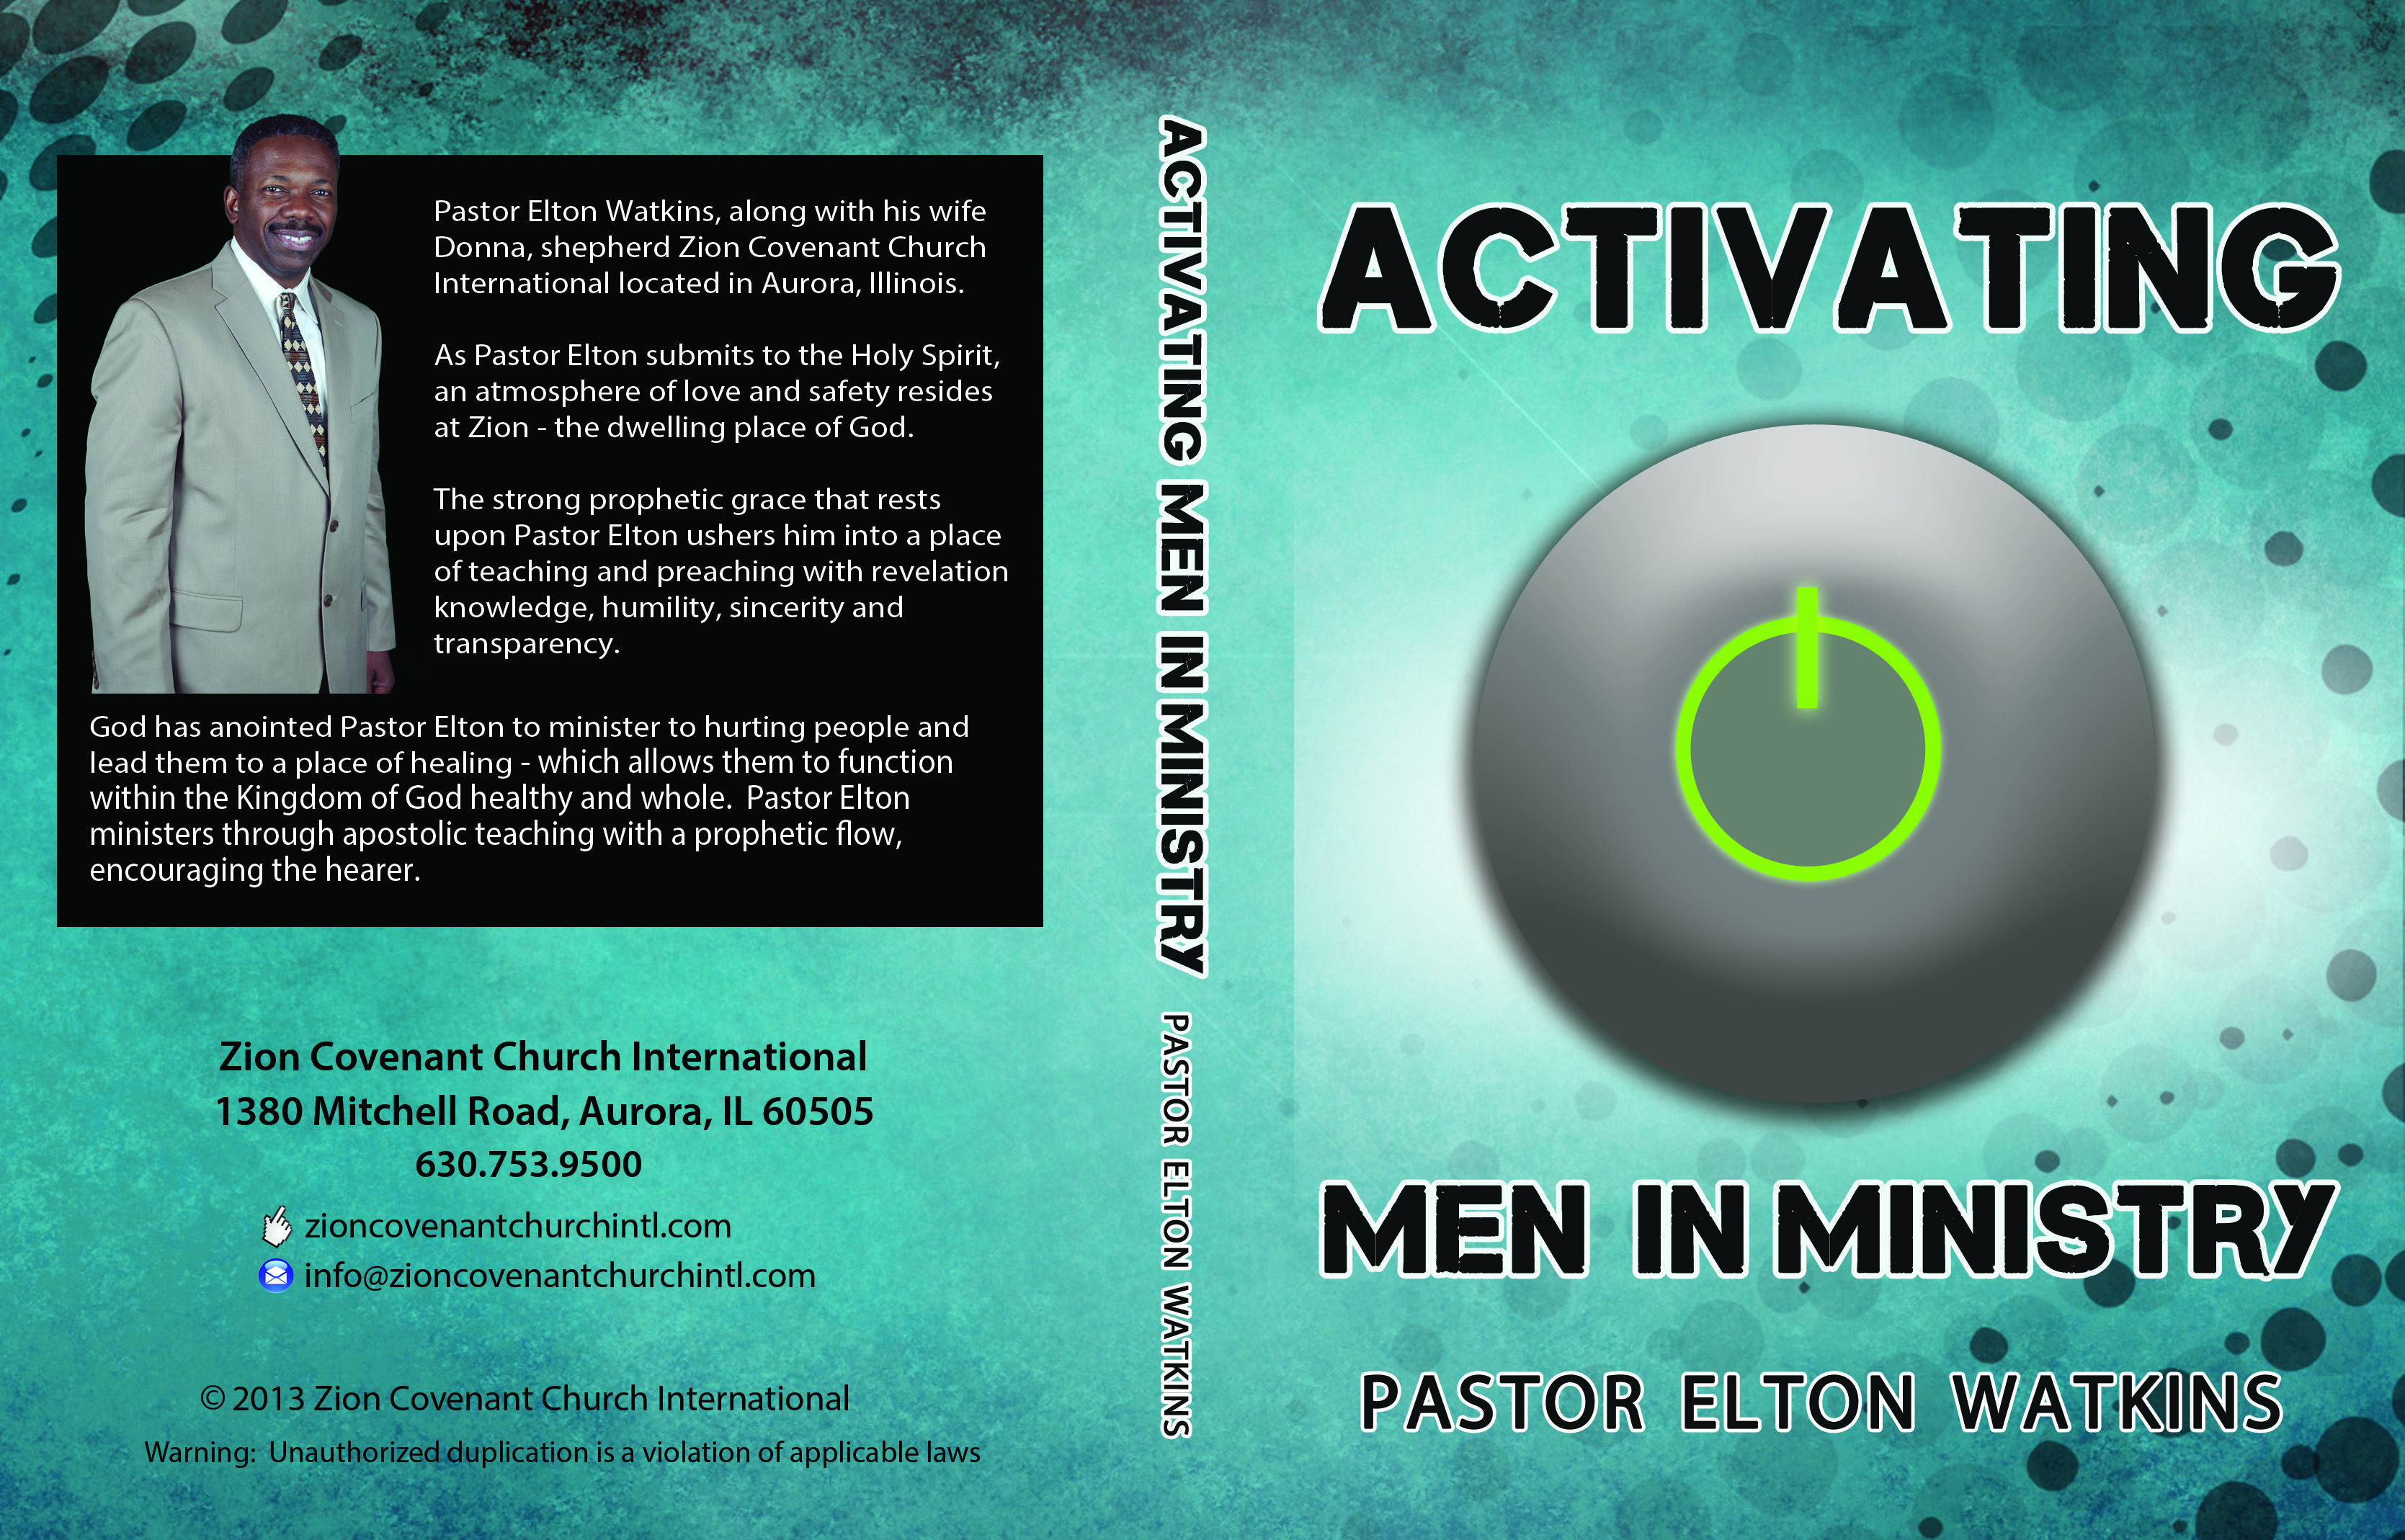 Activating Men in Ministry | CD Covers | Poster, Movie